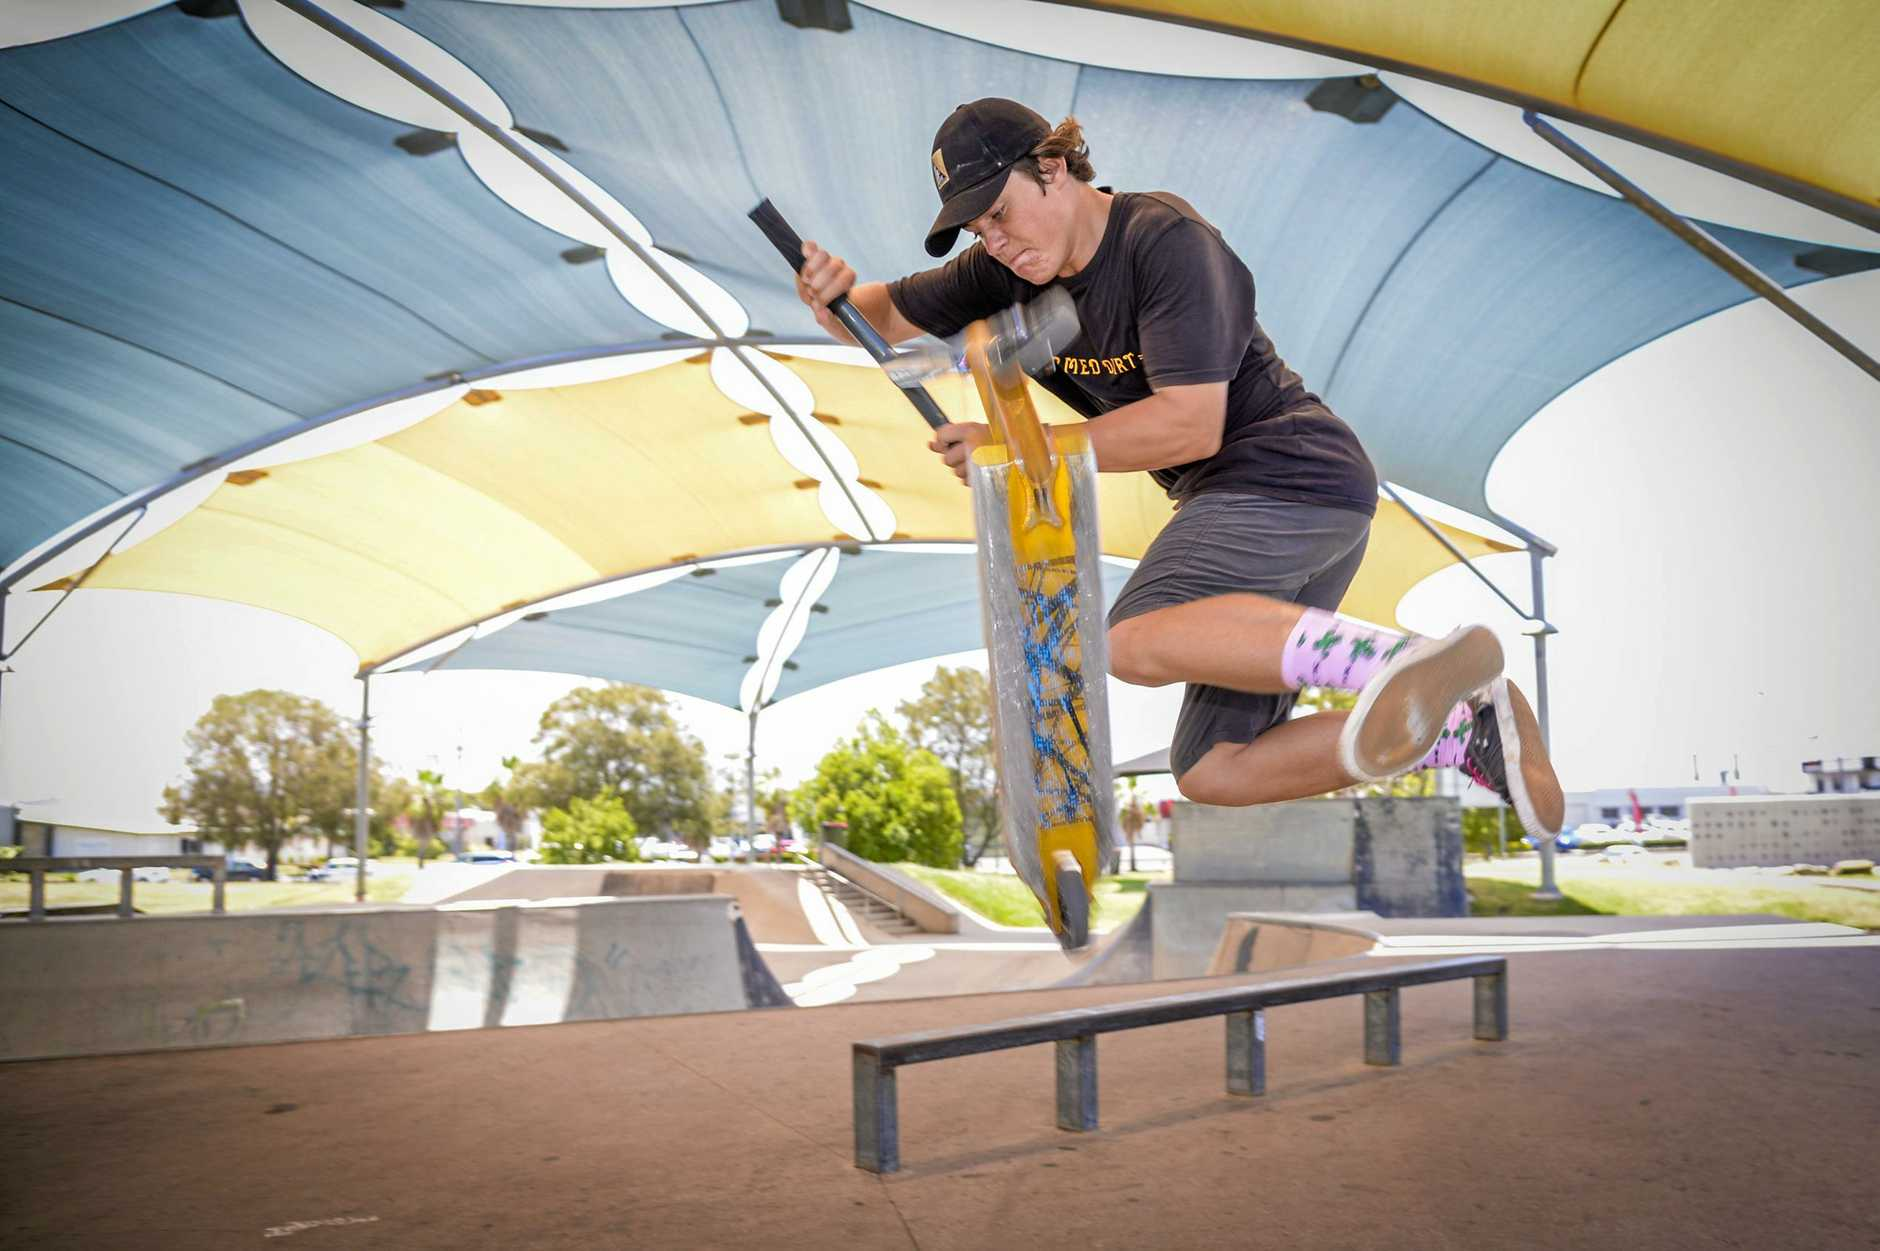 CJ Mason performs a scooter trick at the Gladstone Skate Park this weekend.